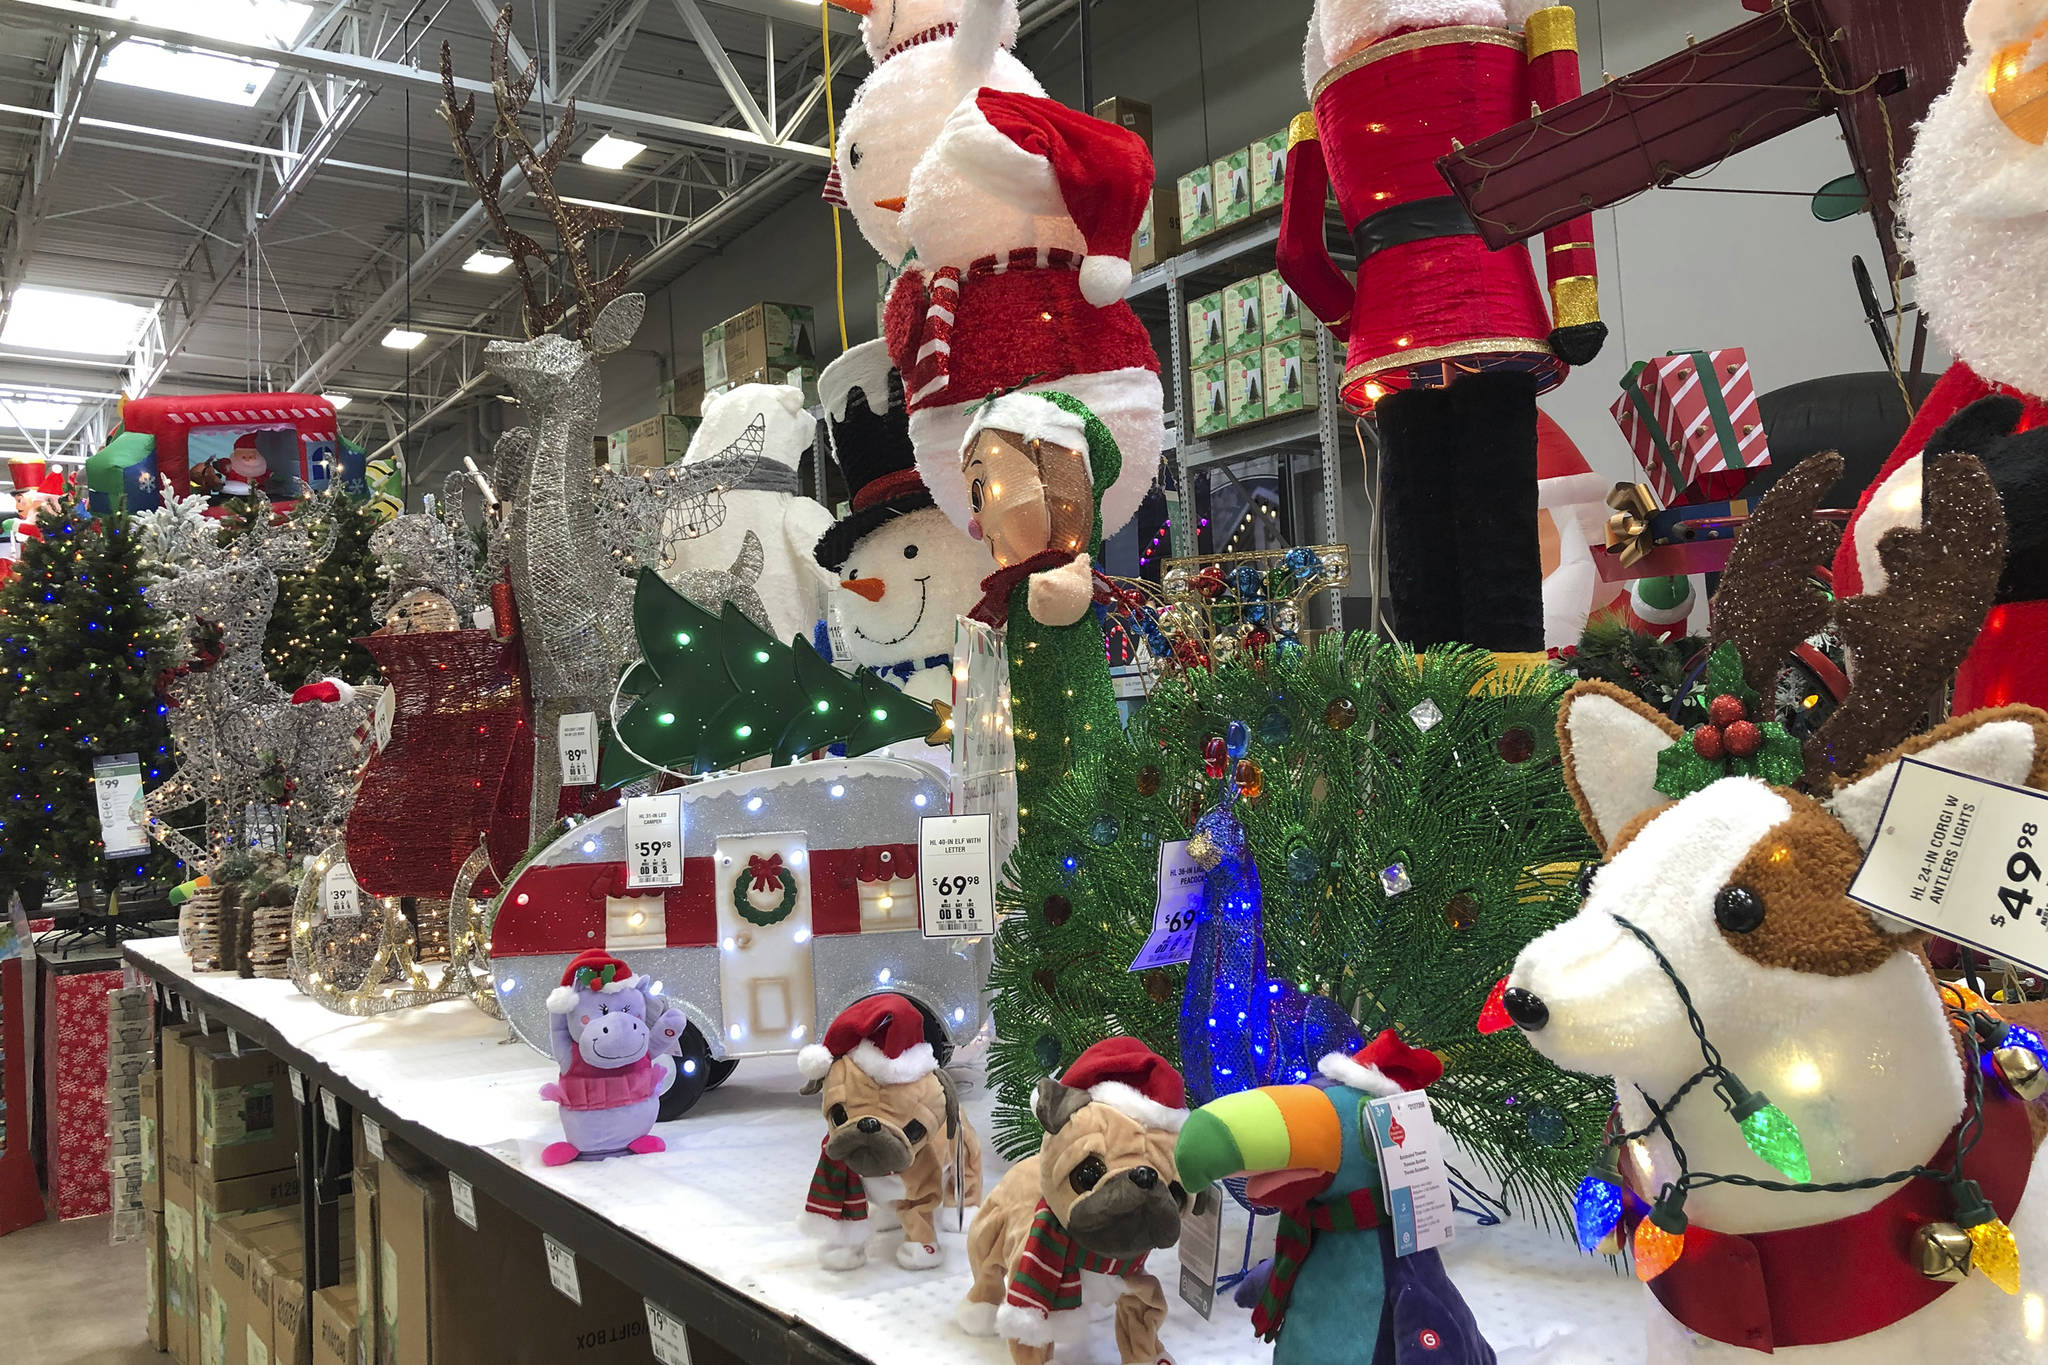 Christmas decorations are displayed at a Lowe's store Friday, Oct. 2, 2020, in Northglenn, Colo. (AP Photo/David Zalubowski)